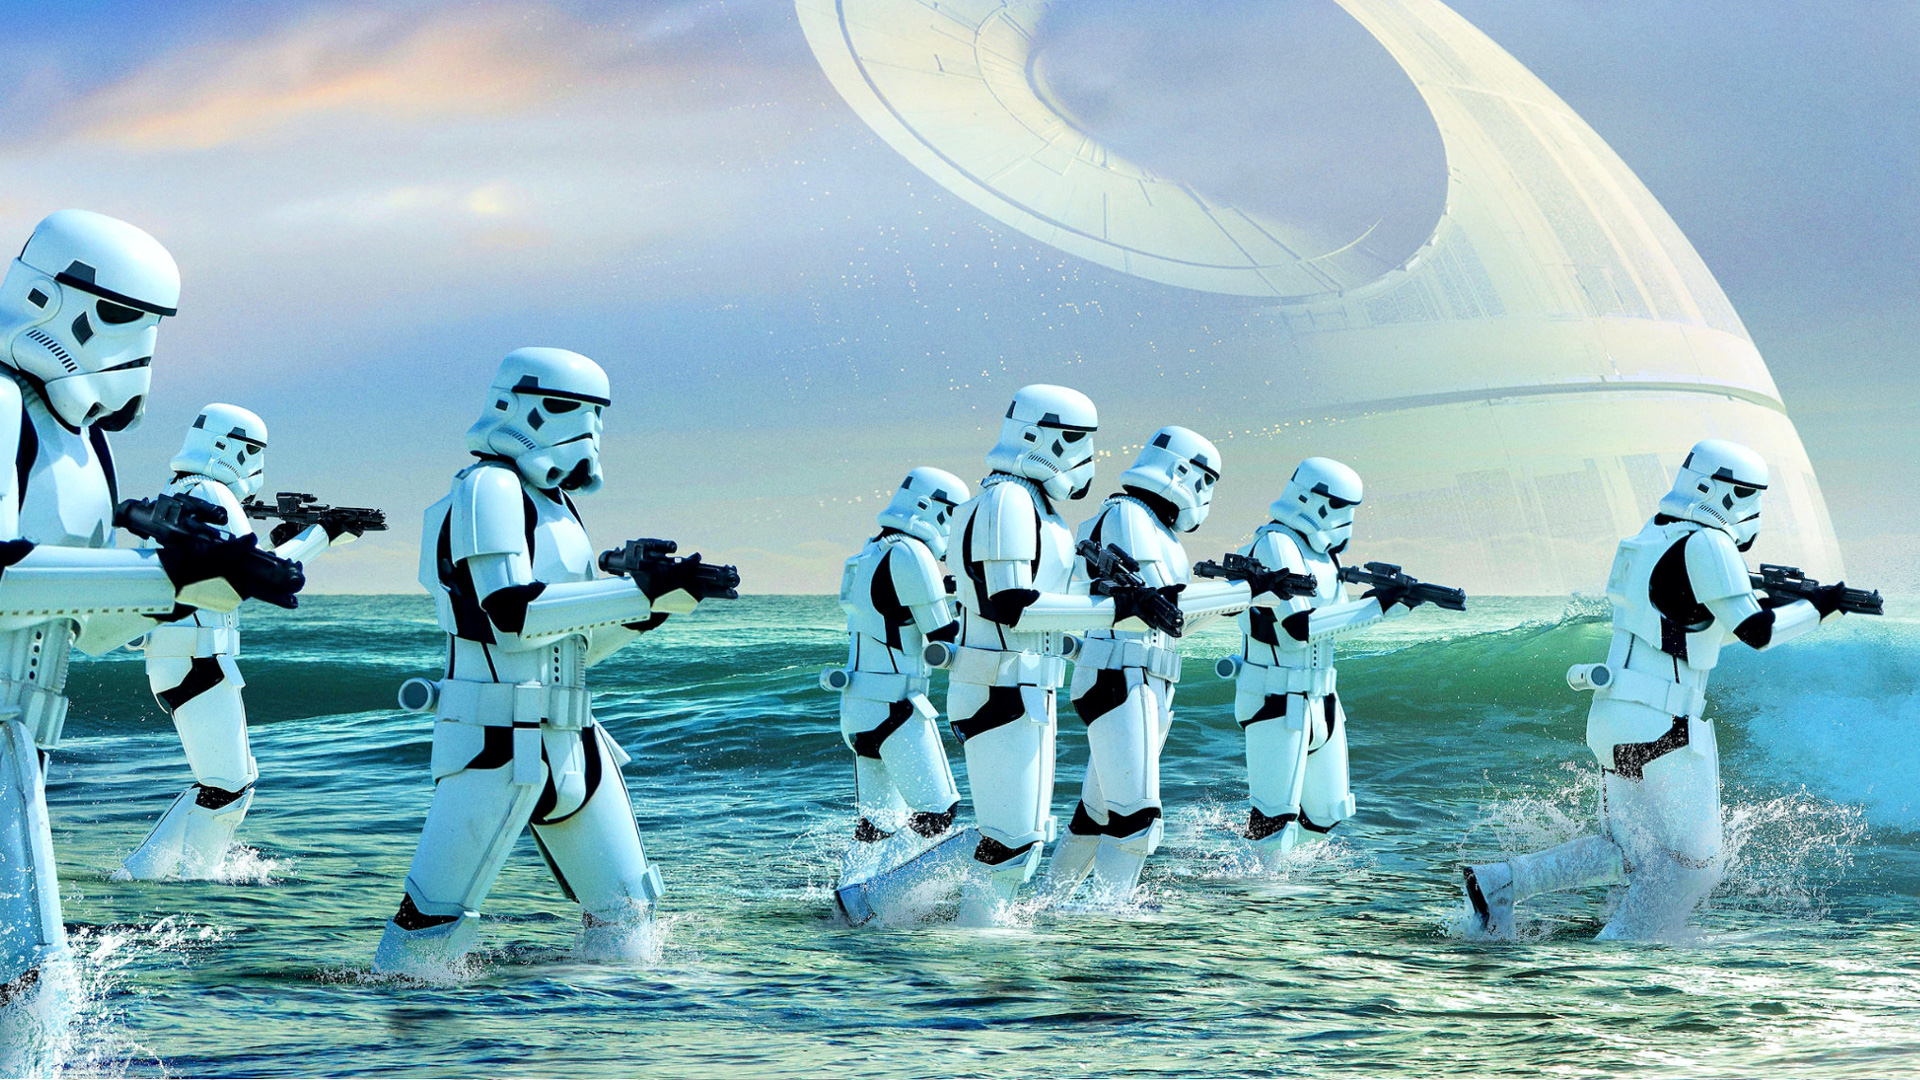 Rogue One Dual Monitor Wallpapers Zoom Comics